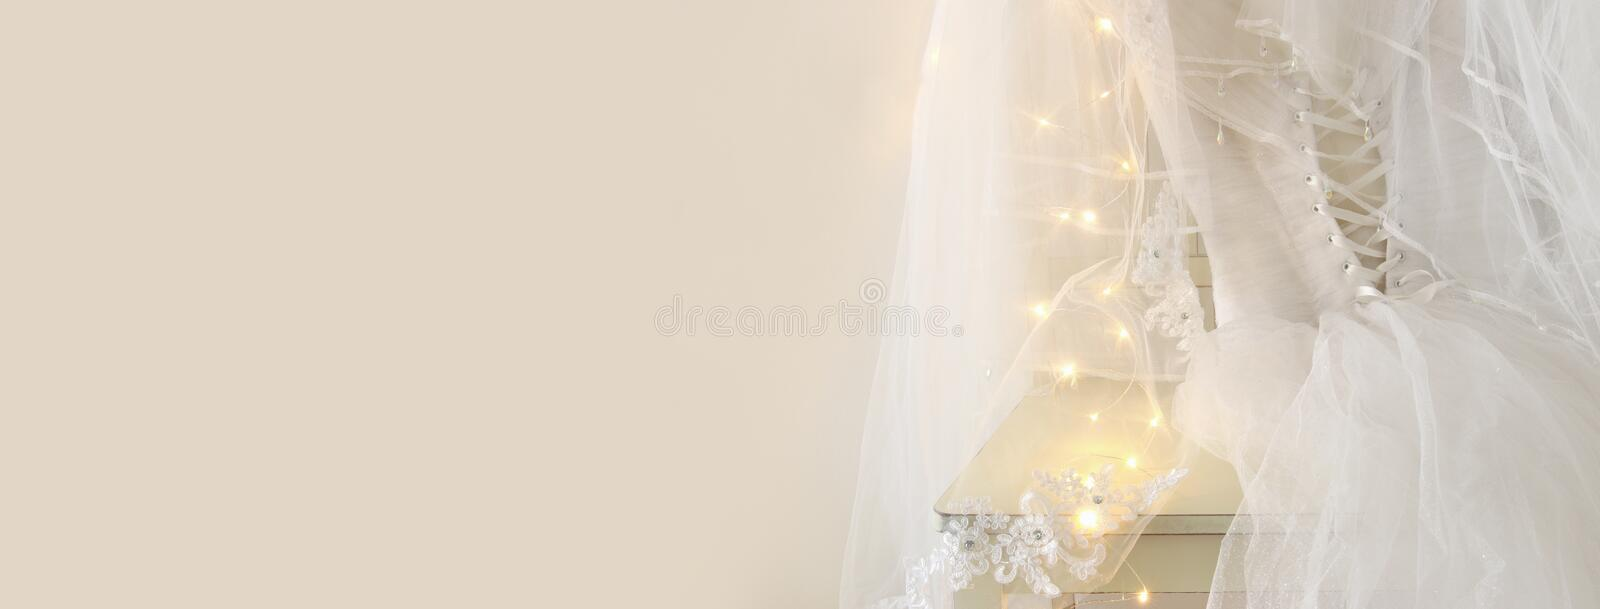 Beautiful white wedding dress and veil on chair with gold garland lights royalty free stock photo